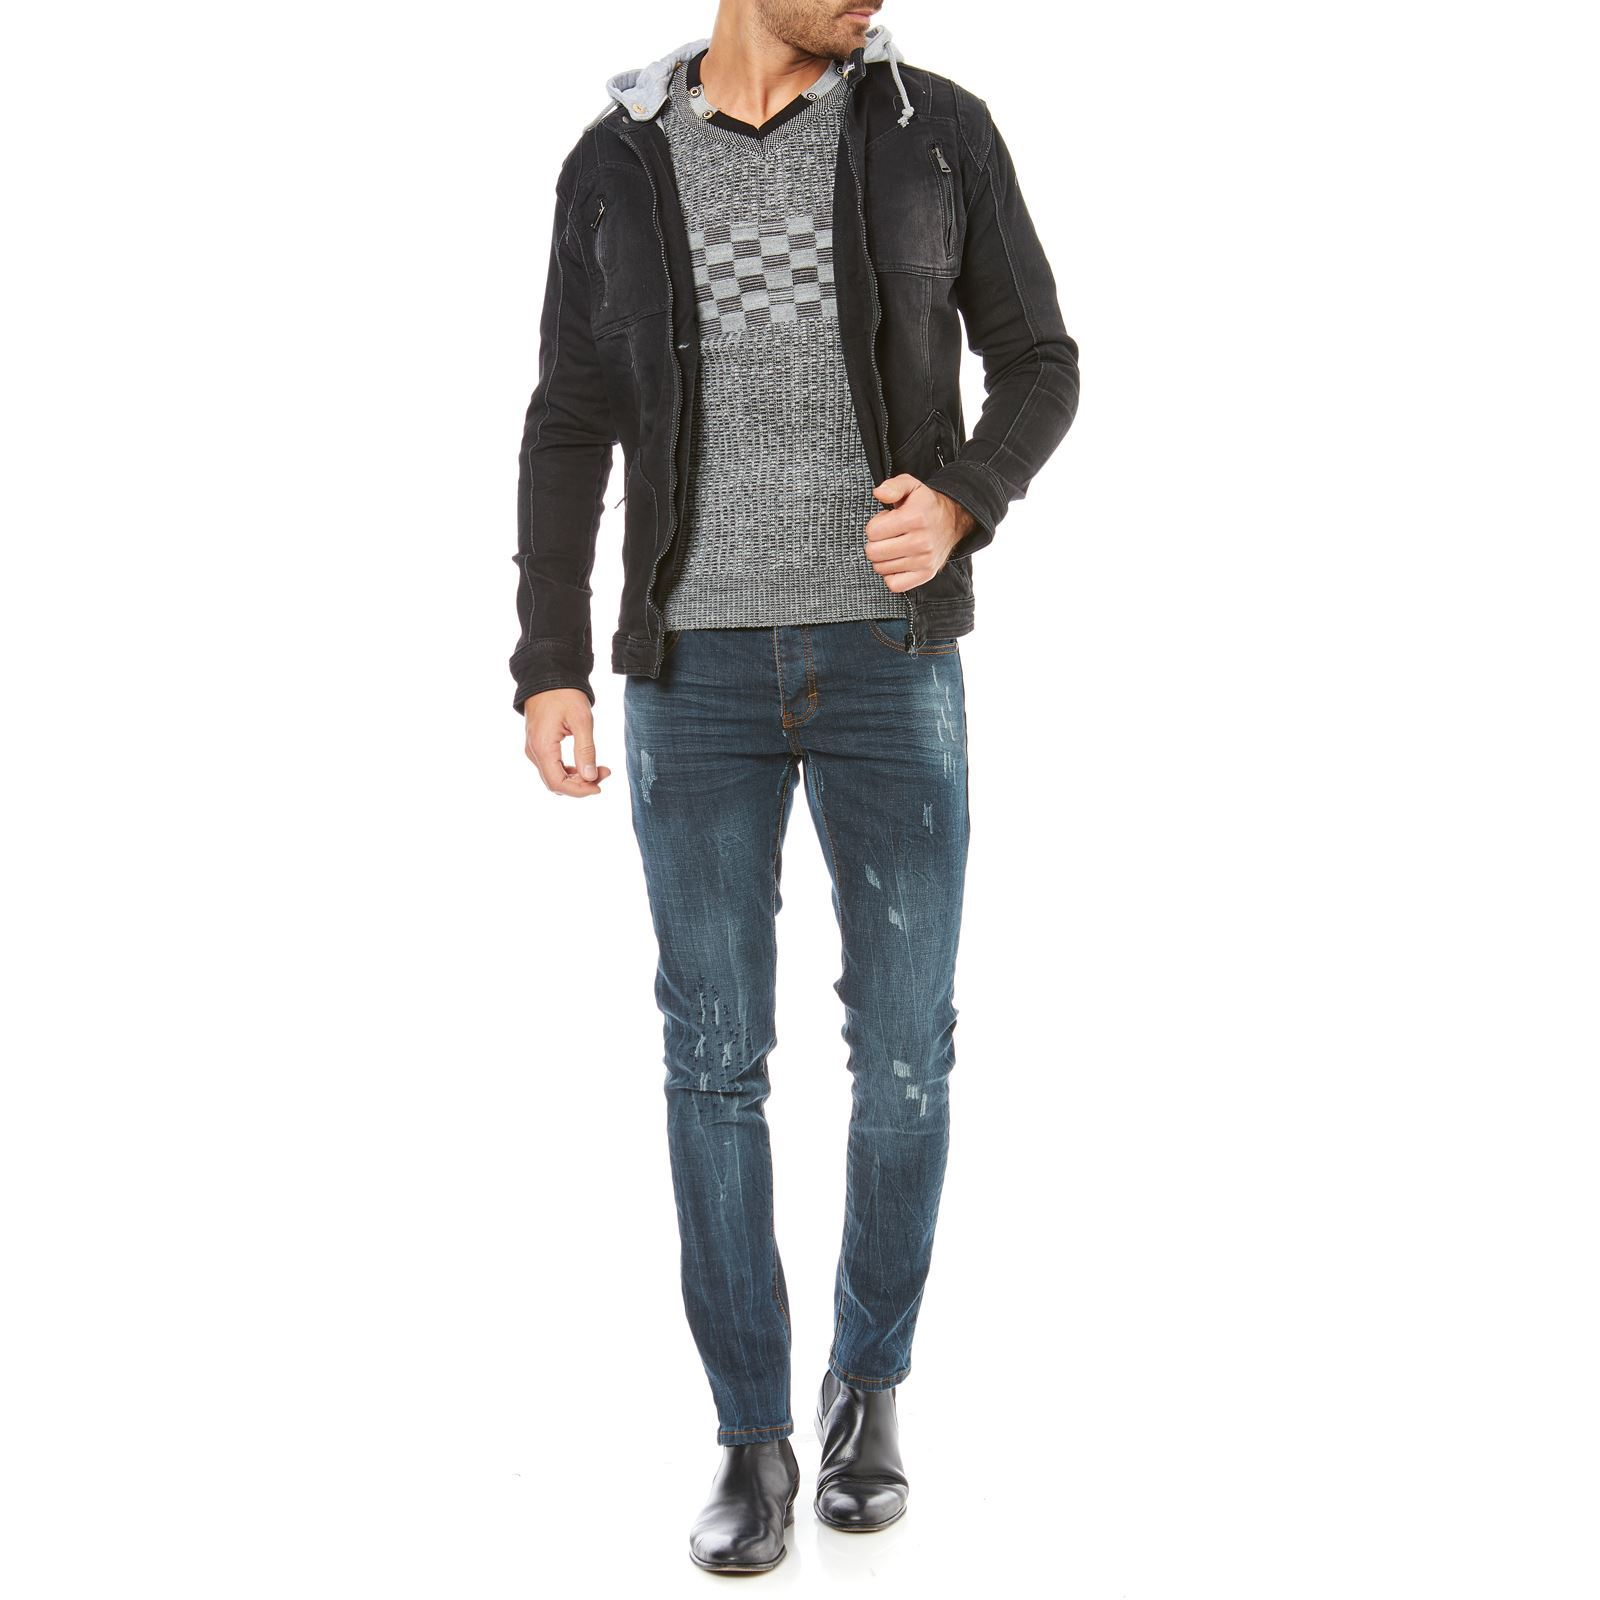 Hite couture jeansjacke schwarz brandalley for Hite couture